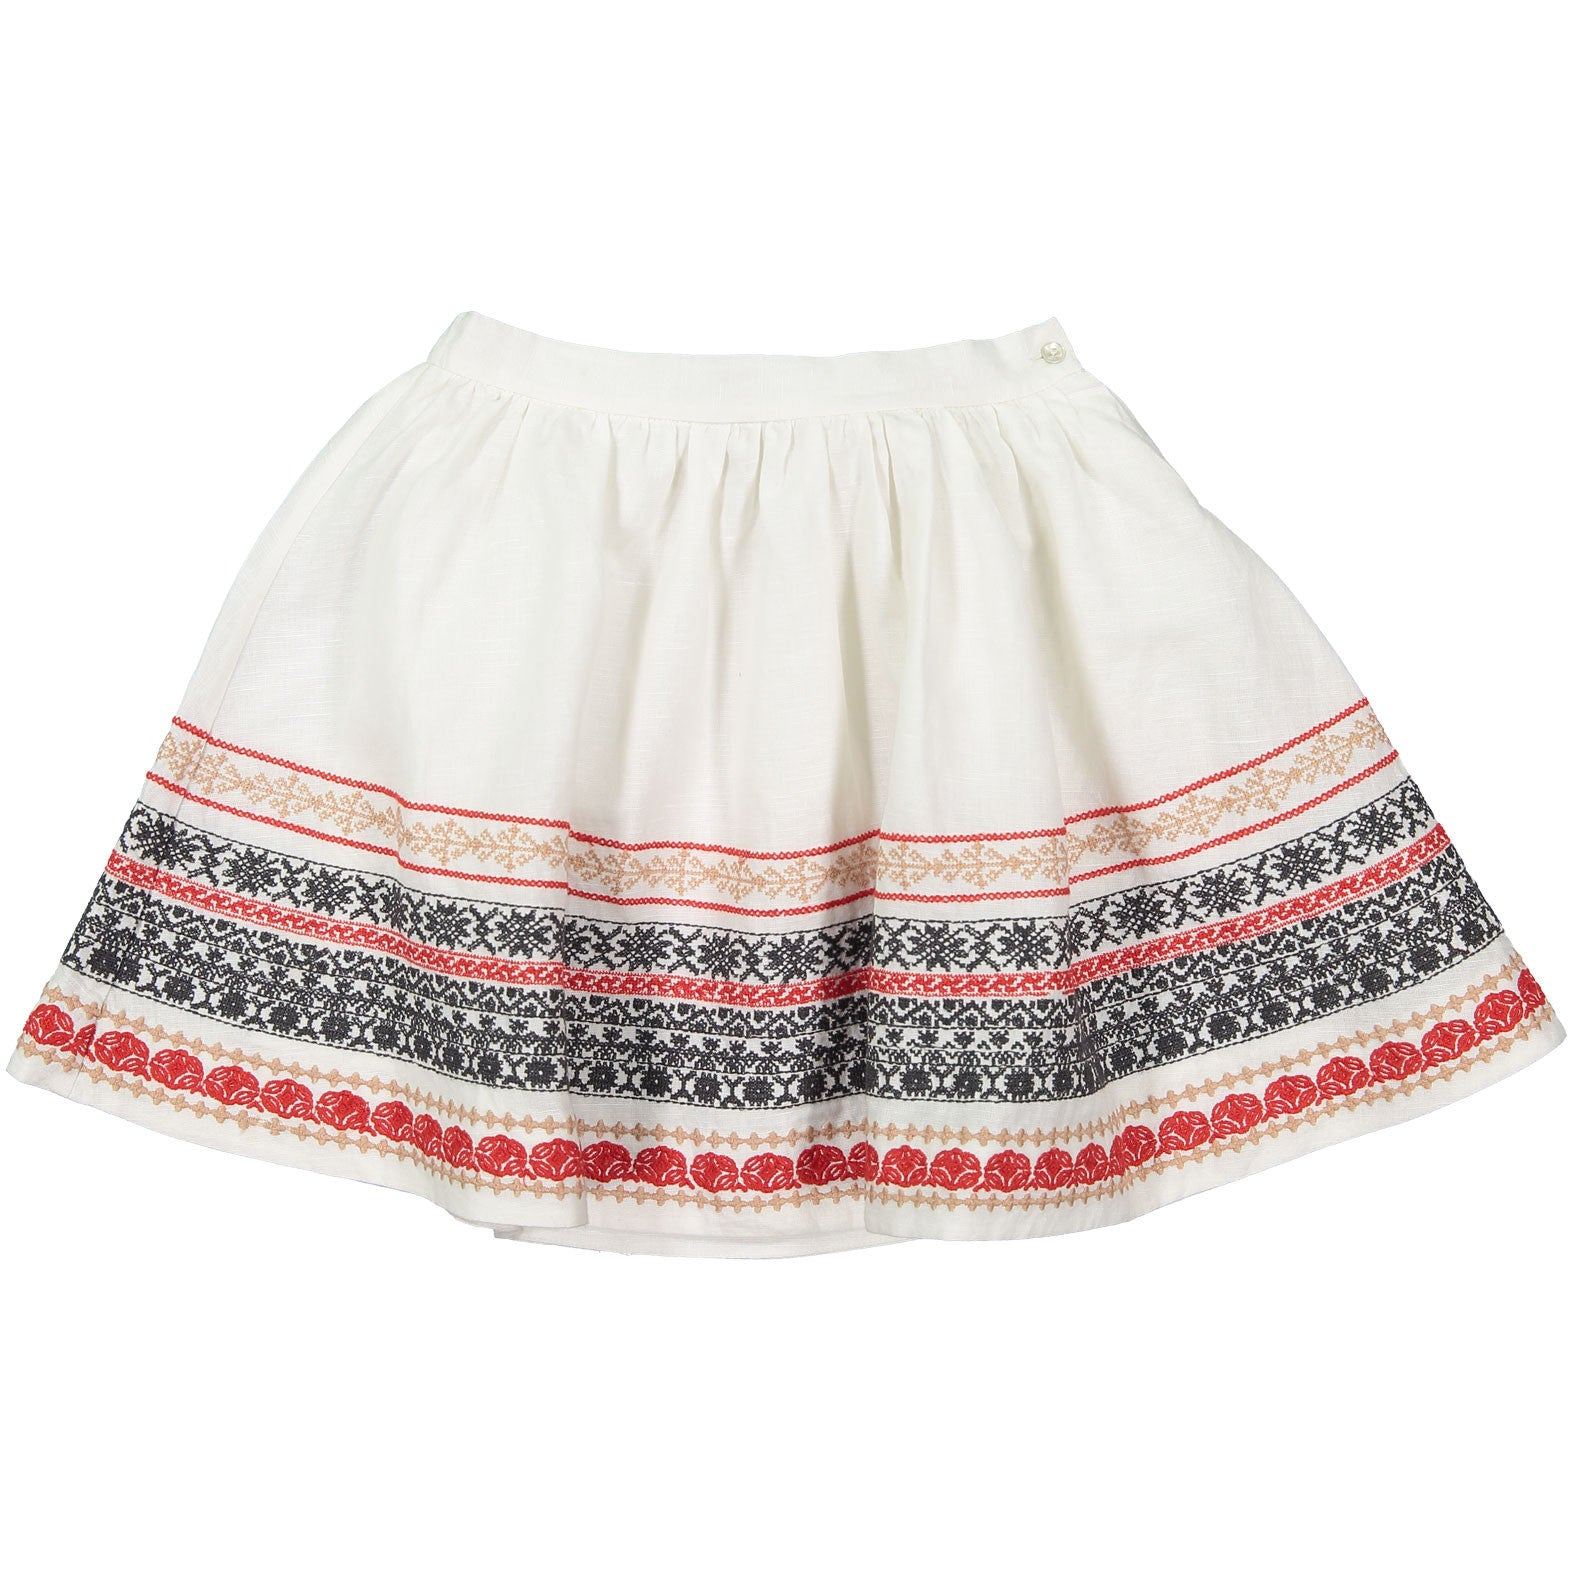 Bonpoint White Embroidered Skirt